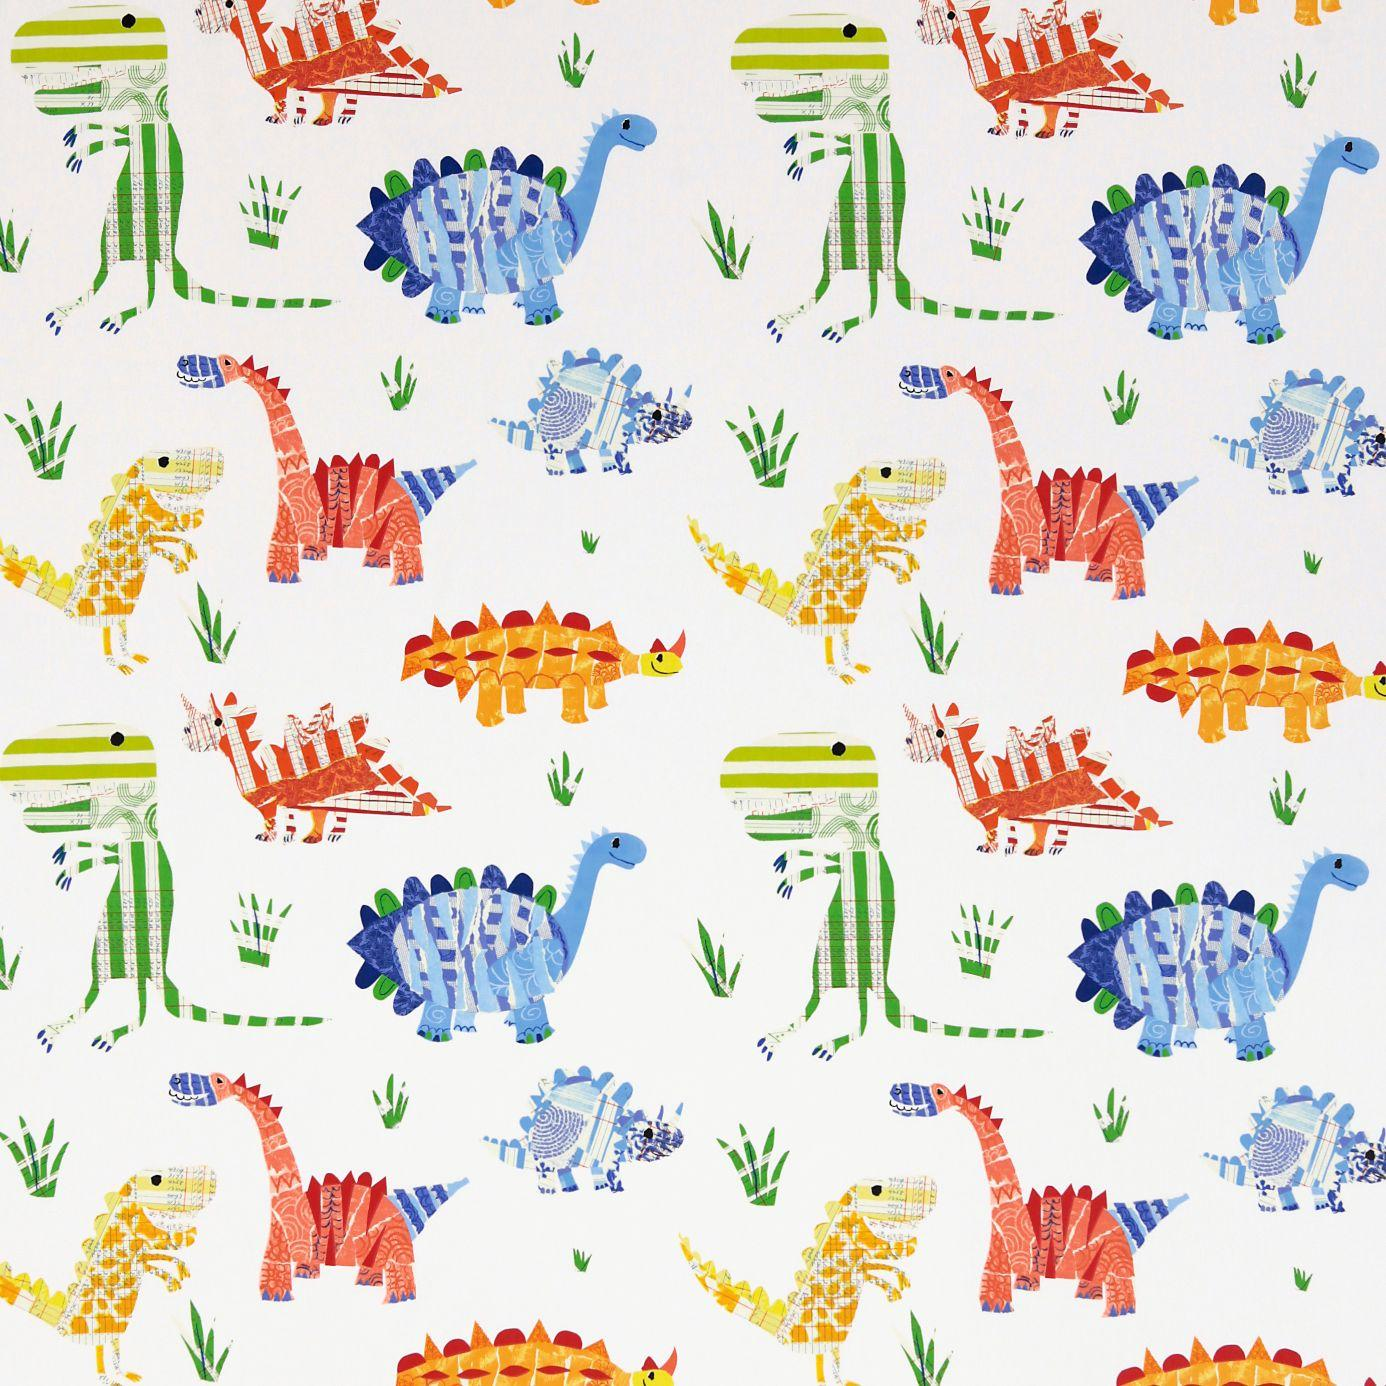 Jolly jurassic fabric aqua tangerine apple natural 3229 for Children of the world fabric